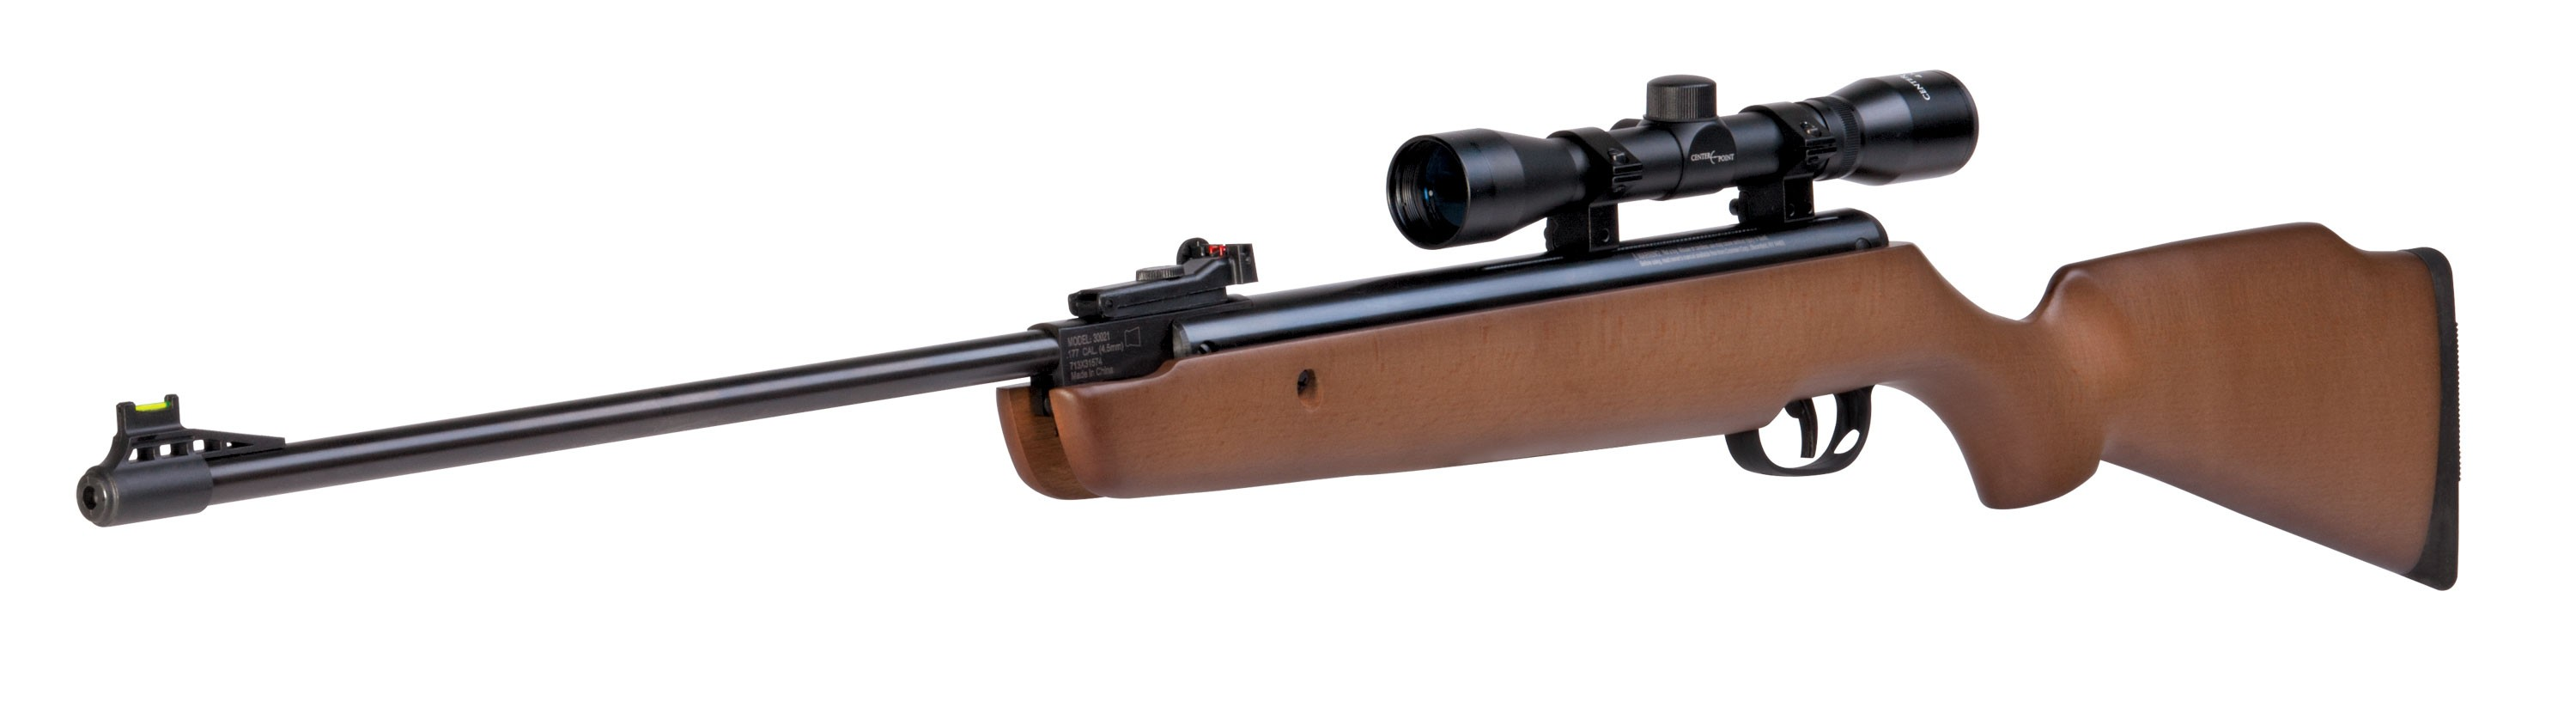 van1 Best Air Rifles for Beginners - Top 5 cheap guns in 2021 (Reviews and Buying Guide)